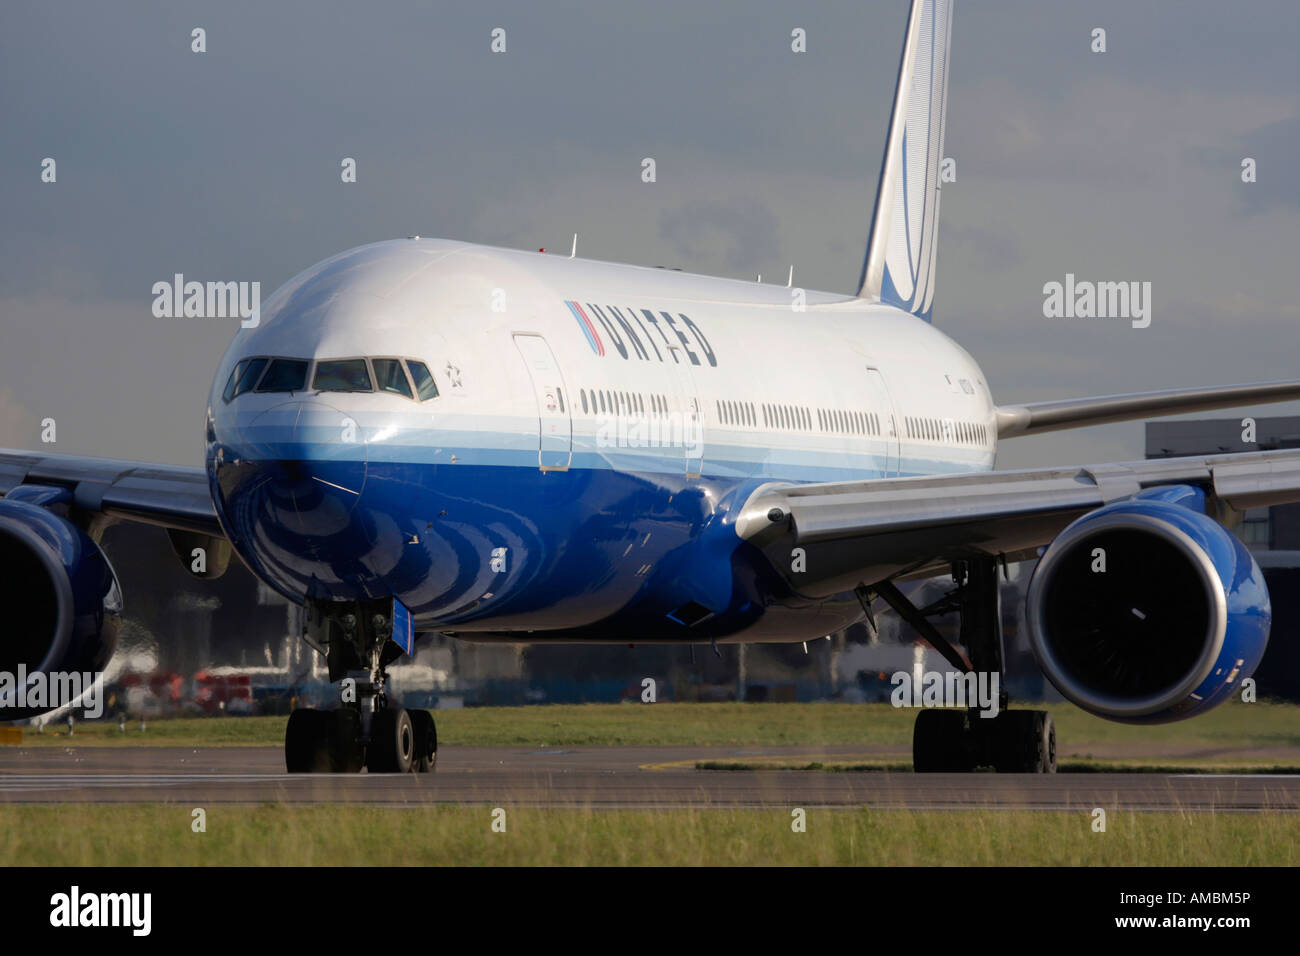 United Airlines Boeing 777 taxiing for departure at Heathrow Airport London UK - Stock Image